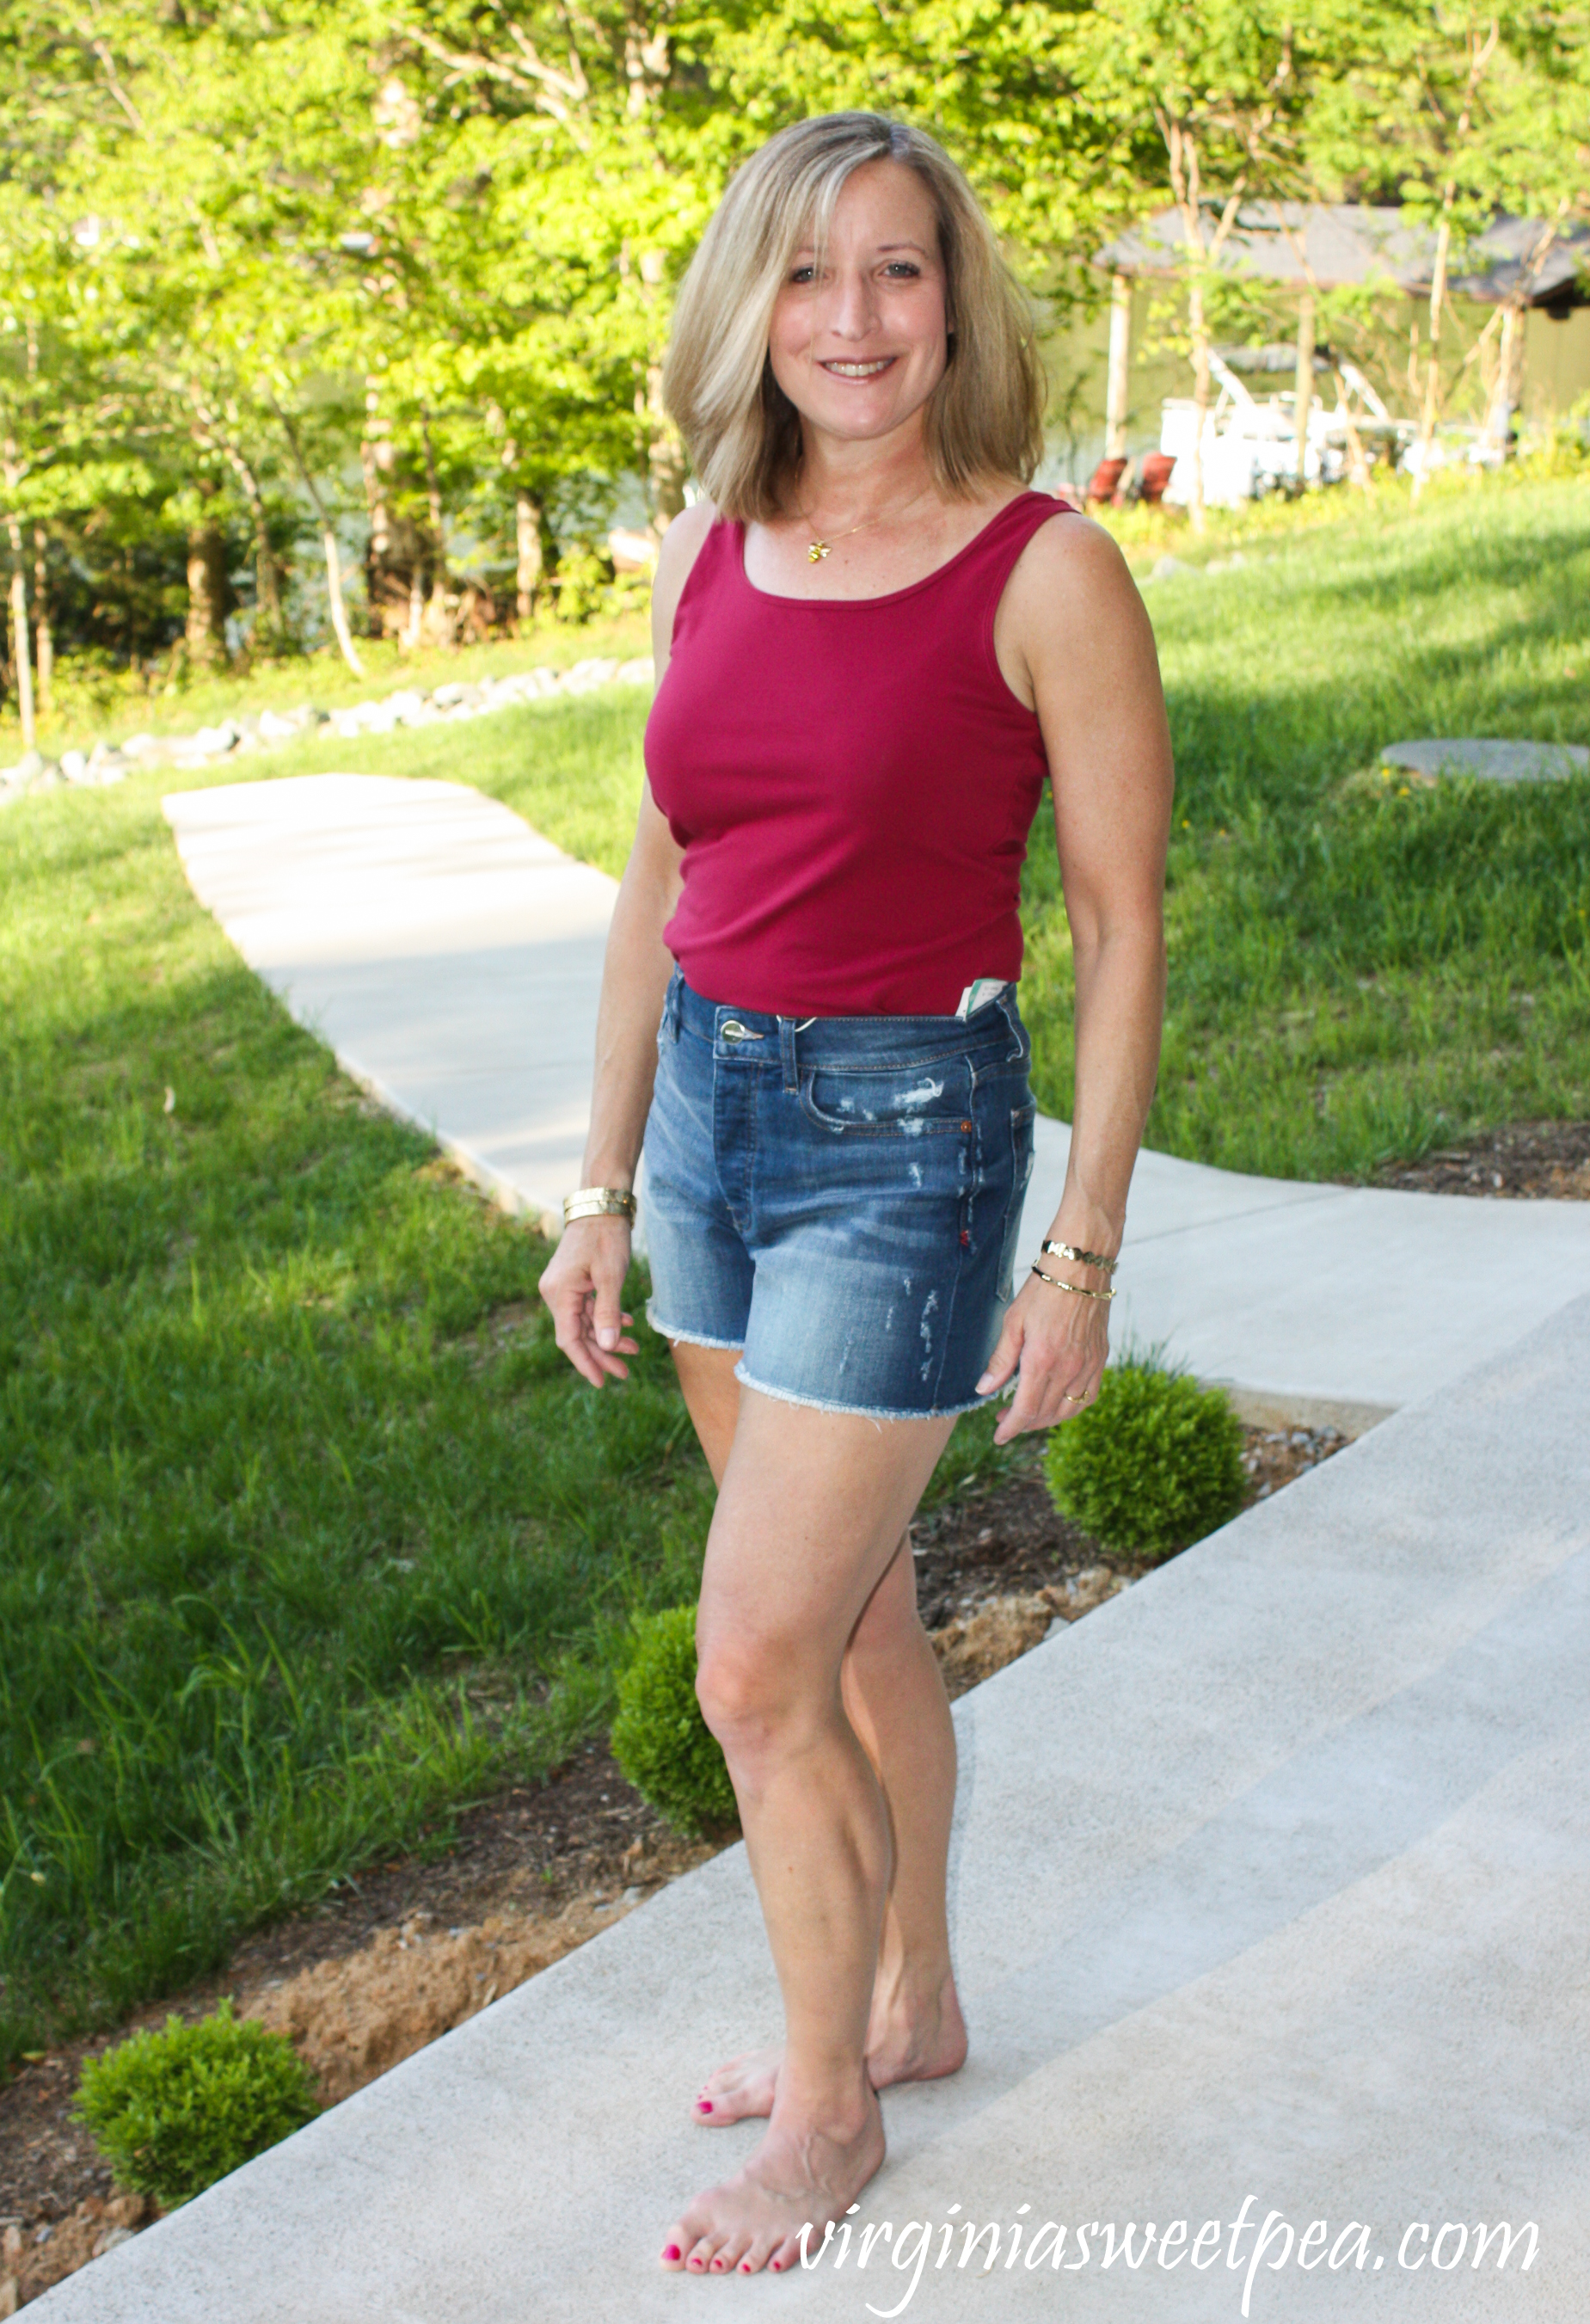 Stitch Fix Review for May 2019 - Warp + Weft Andie Distressed Frayed Hem Short #stitchfix #stitchfixreview #stitchfixsummer #stitchfixshorts